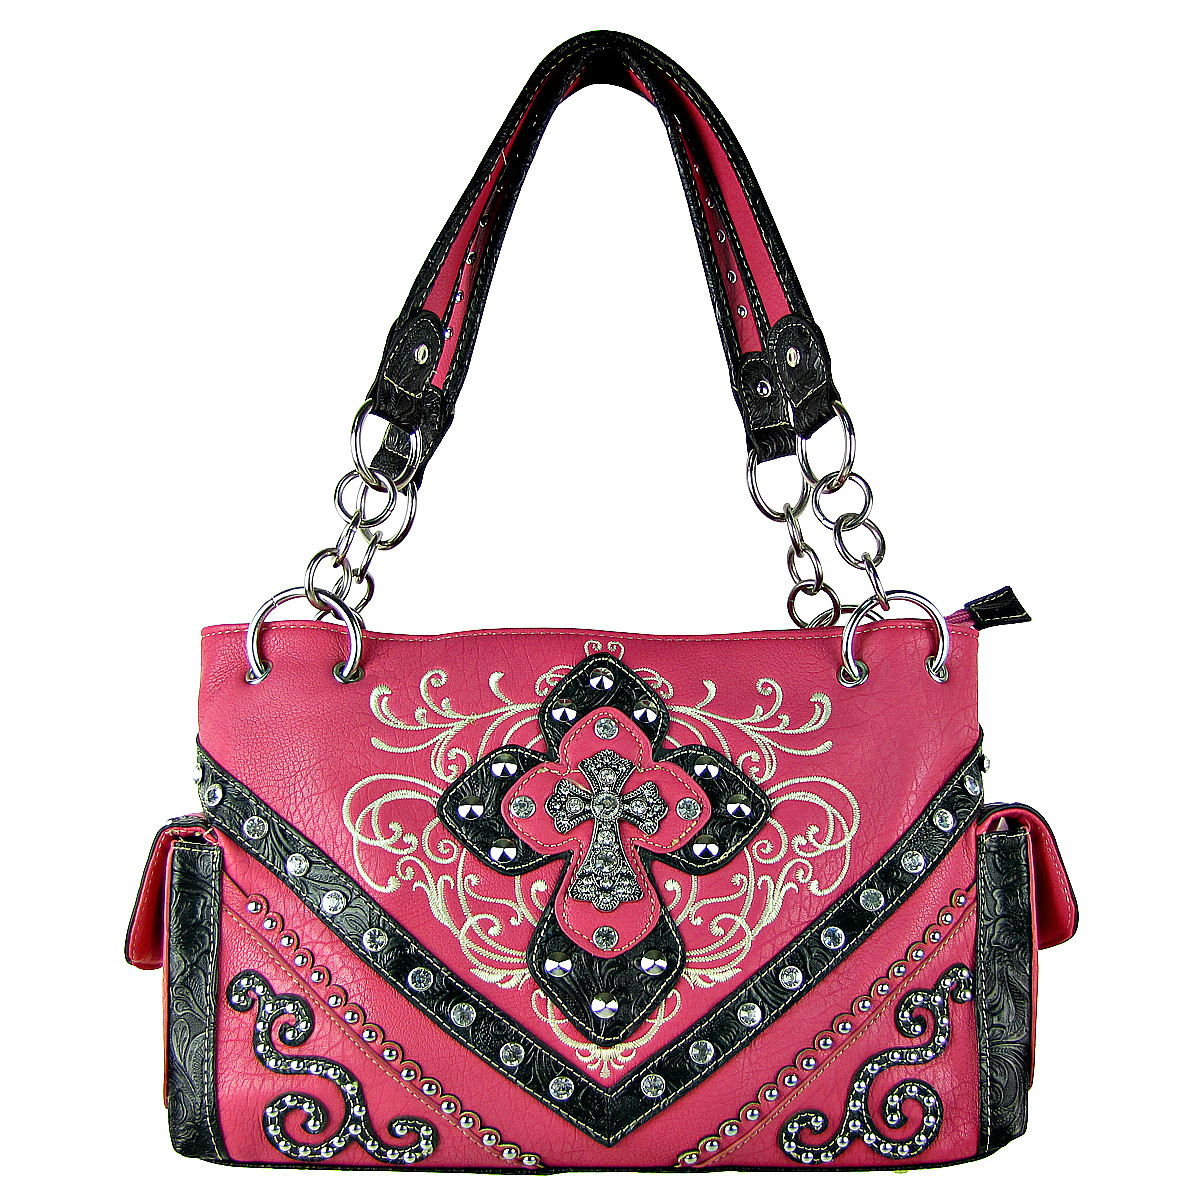 HOT PINK STUDDED RHINESTONE STITCHED CROSS LOOK SHOULDER HANDBAG HOT PINK STUDDED RHINESTONE STITCHED CROSS LOOK SHOULDER HANDBAG HB1-HL12980HPK